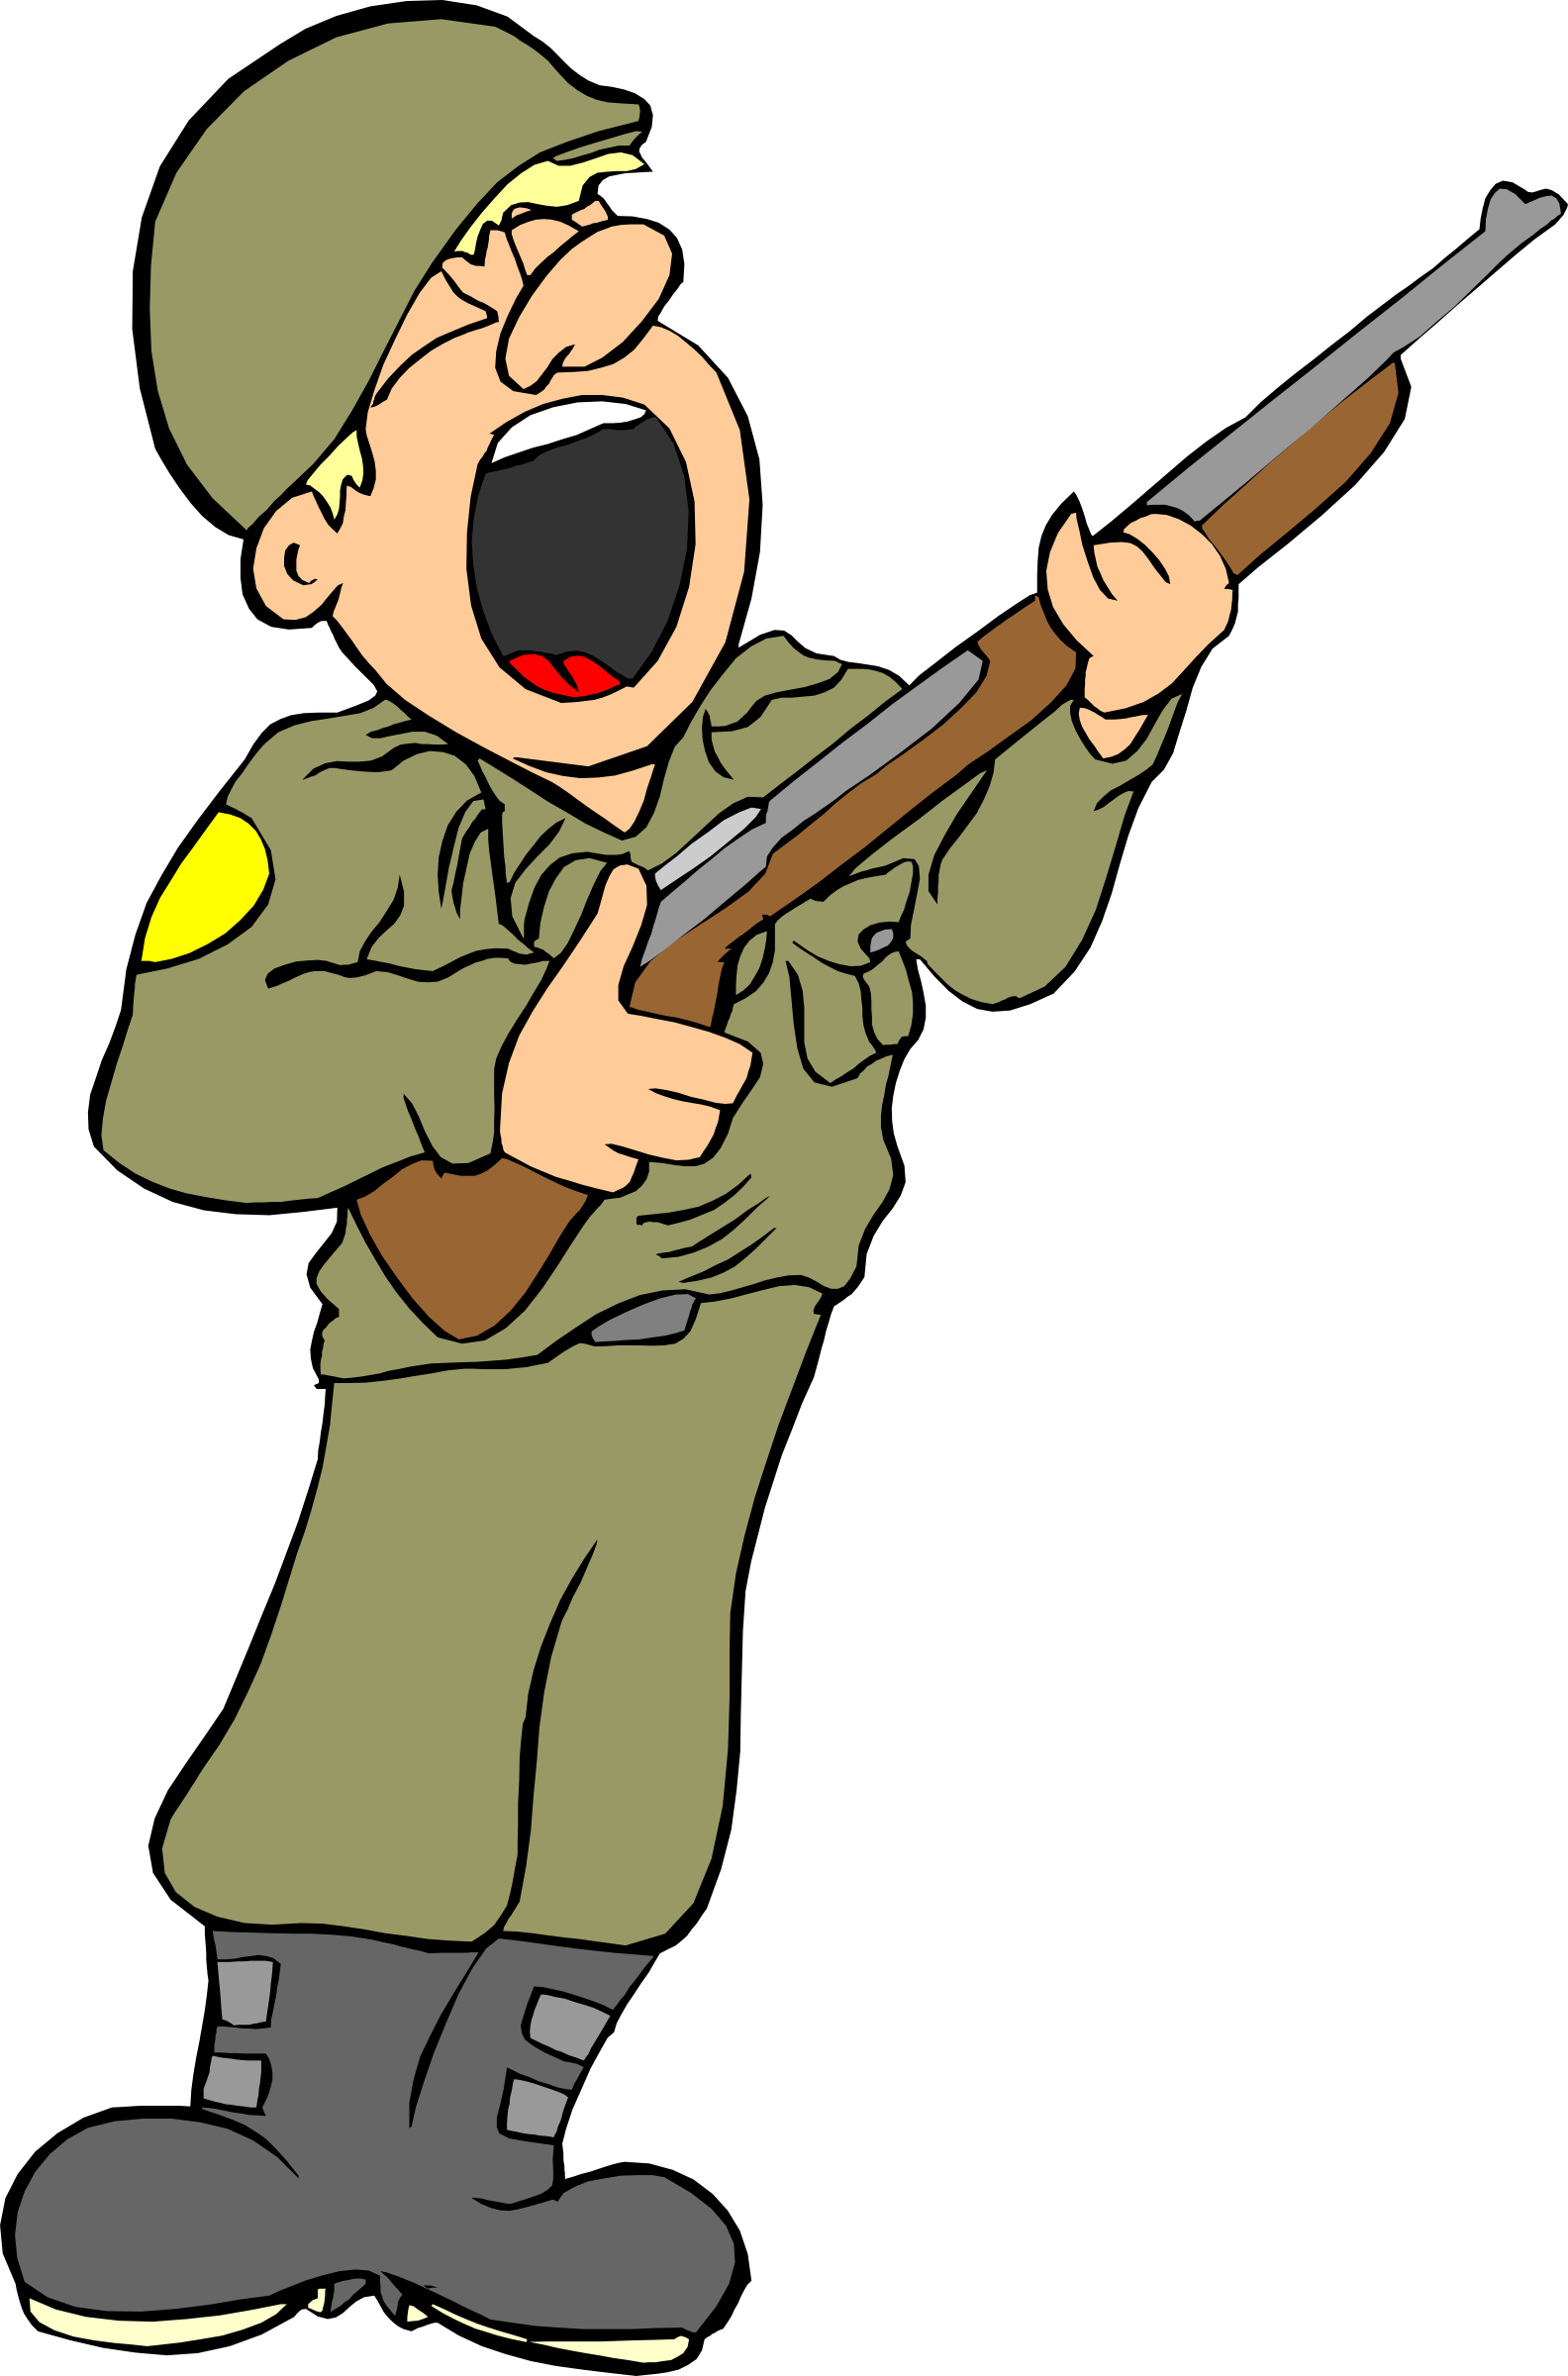 Army clipart army man. Big image png